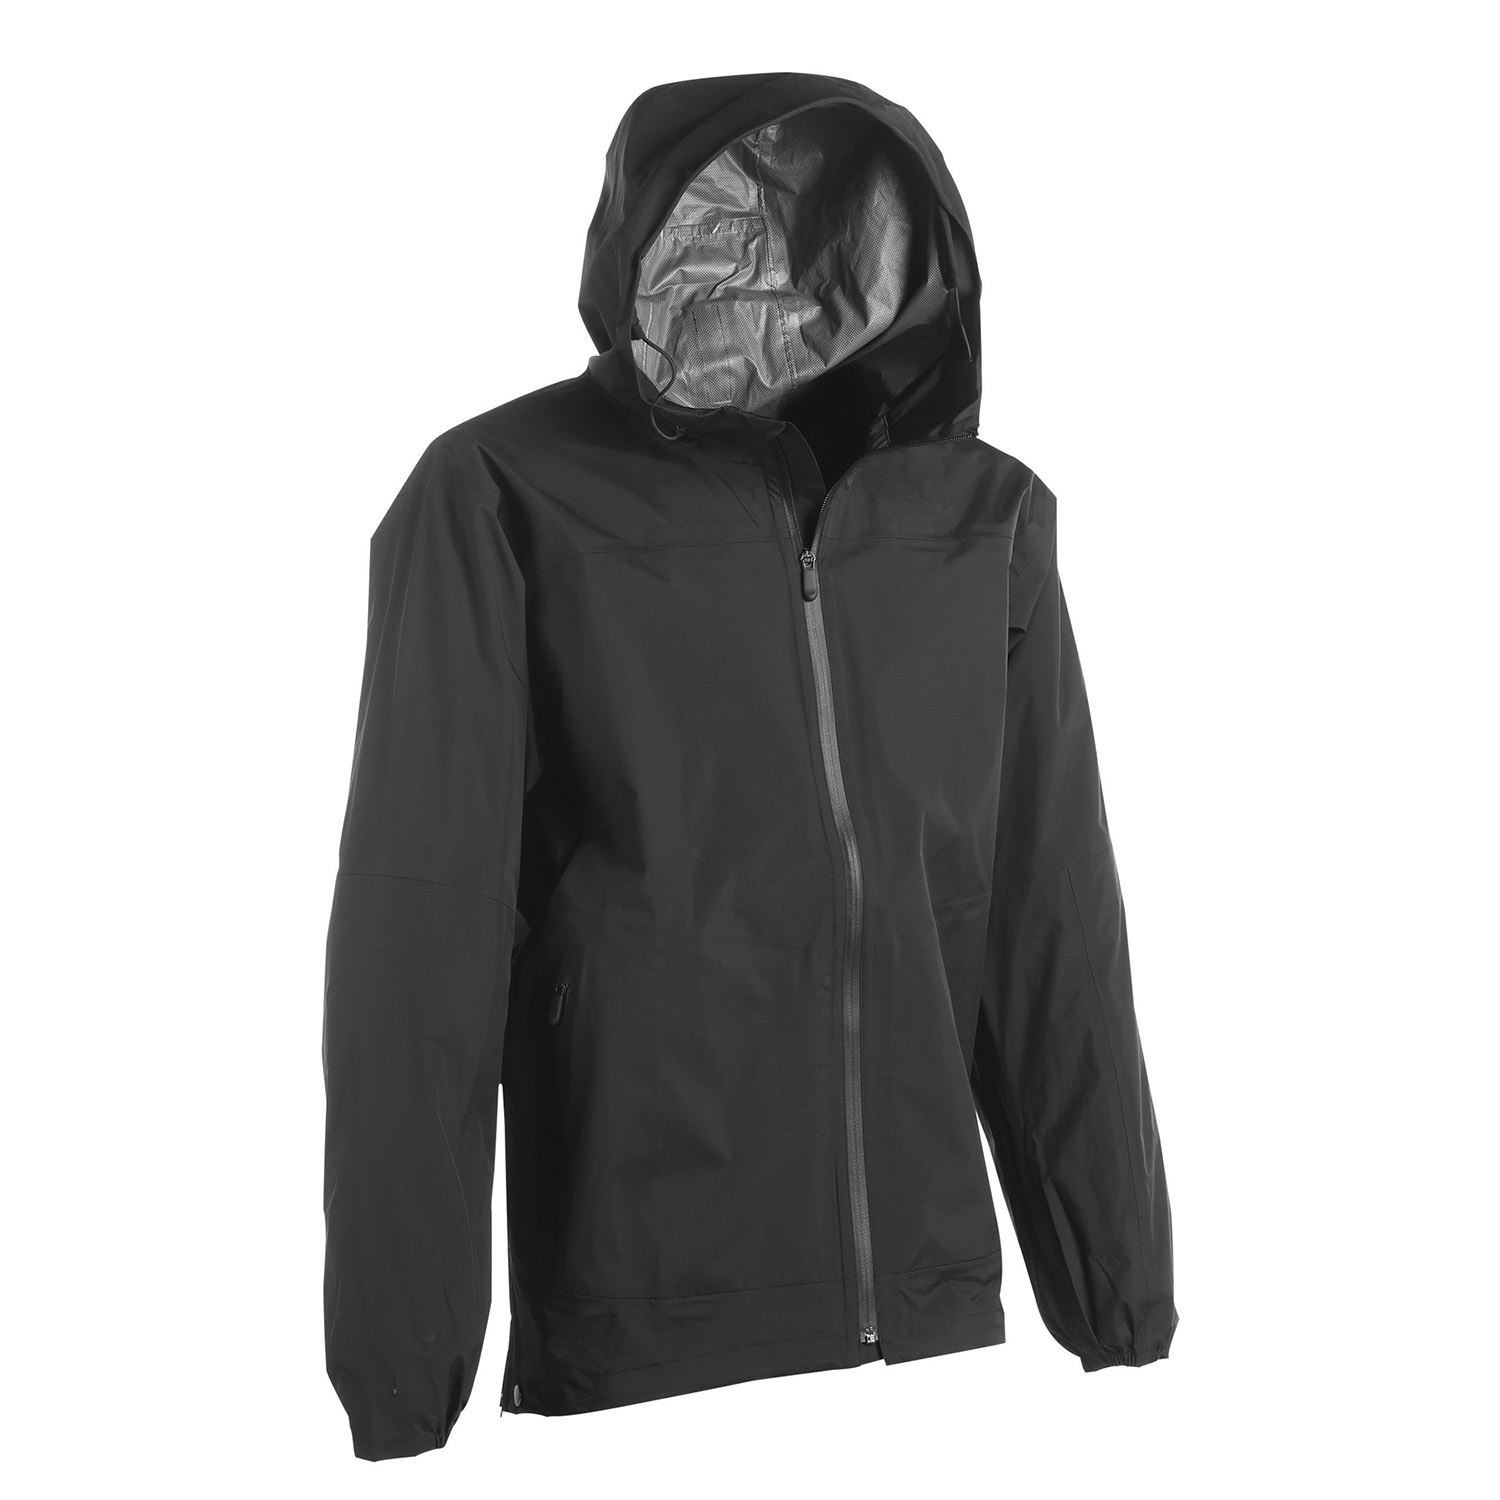 Tru-Spec H20 Proof All Season Rain Jacket